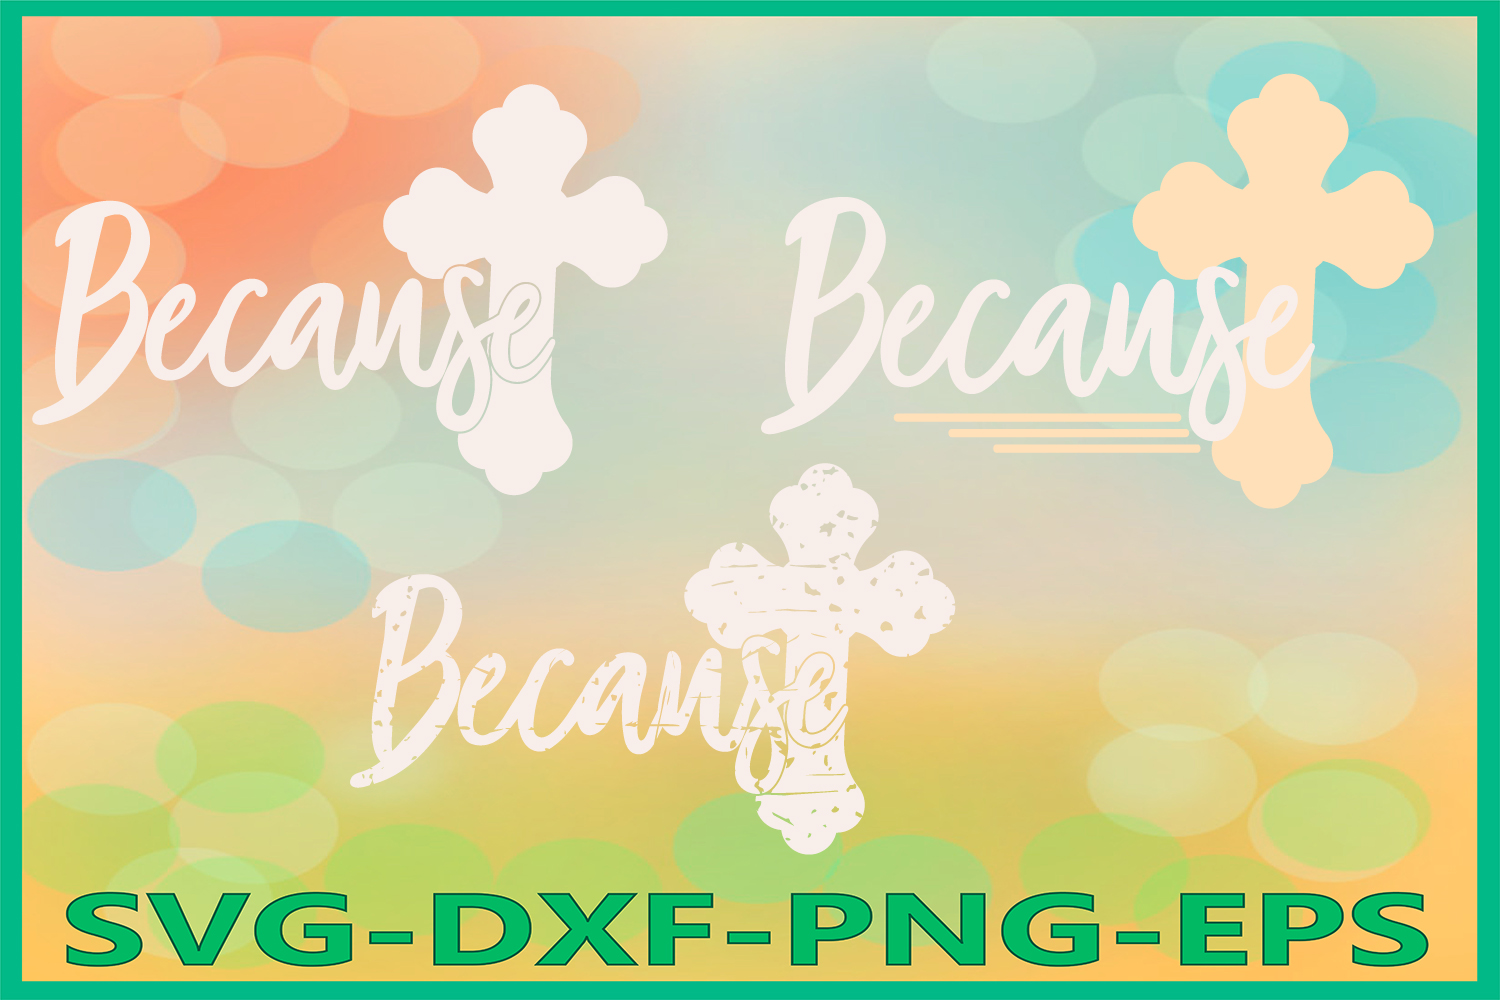 Because SVG Files, Cross Grunge, He is Risen, Spring Decor example image 1